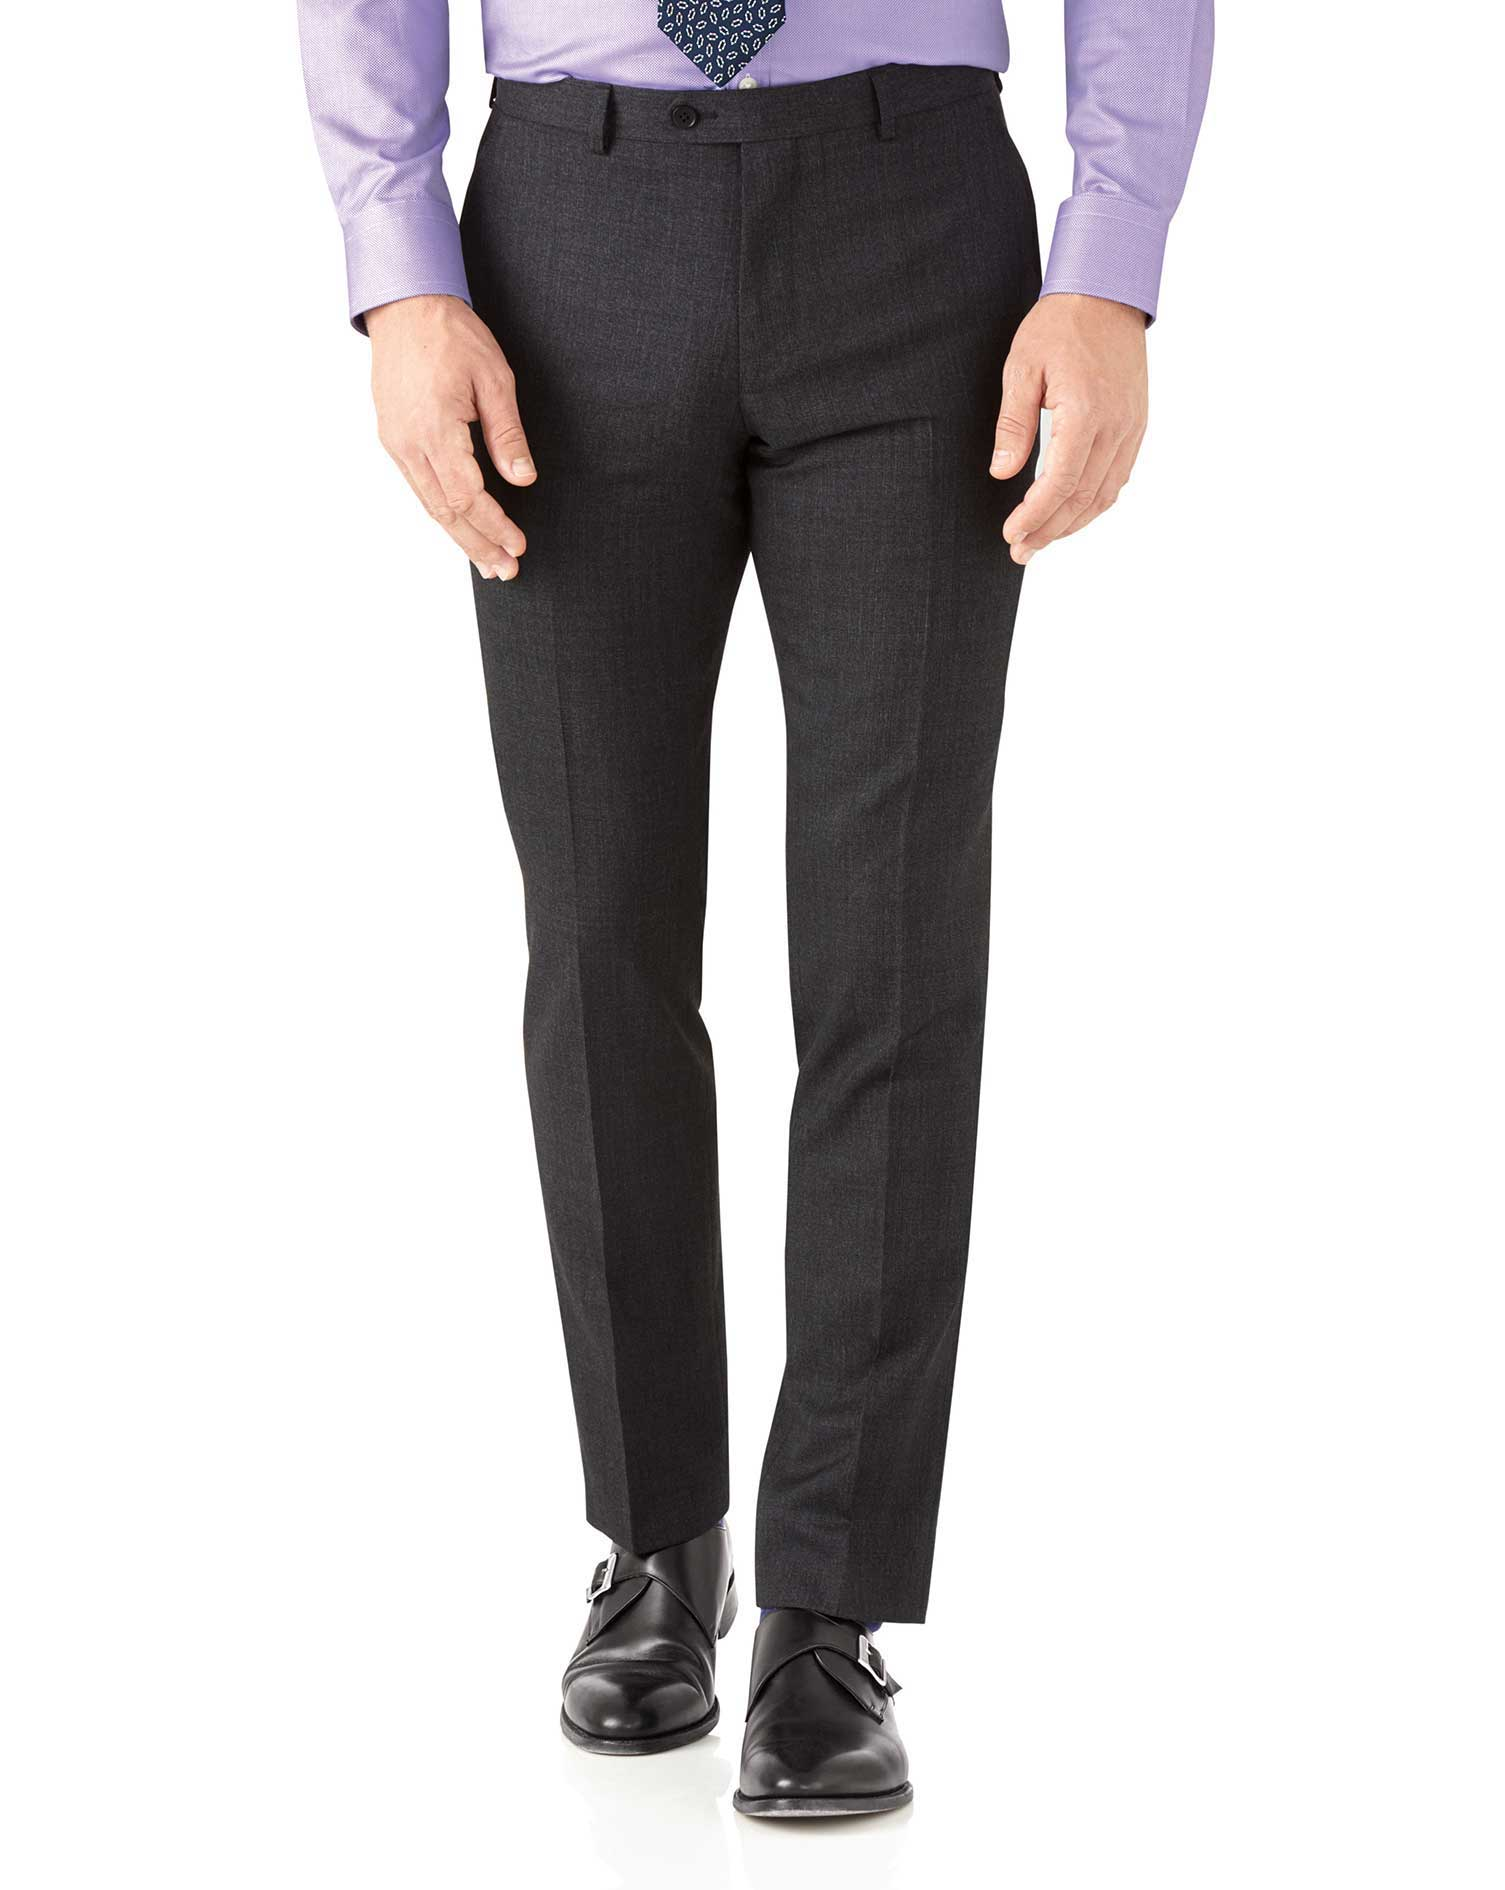 Charcoal Slim Fit Hairline Business Suit Trousers Size W34 L32 by Charles Tyrwhitt